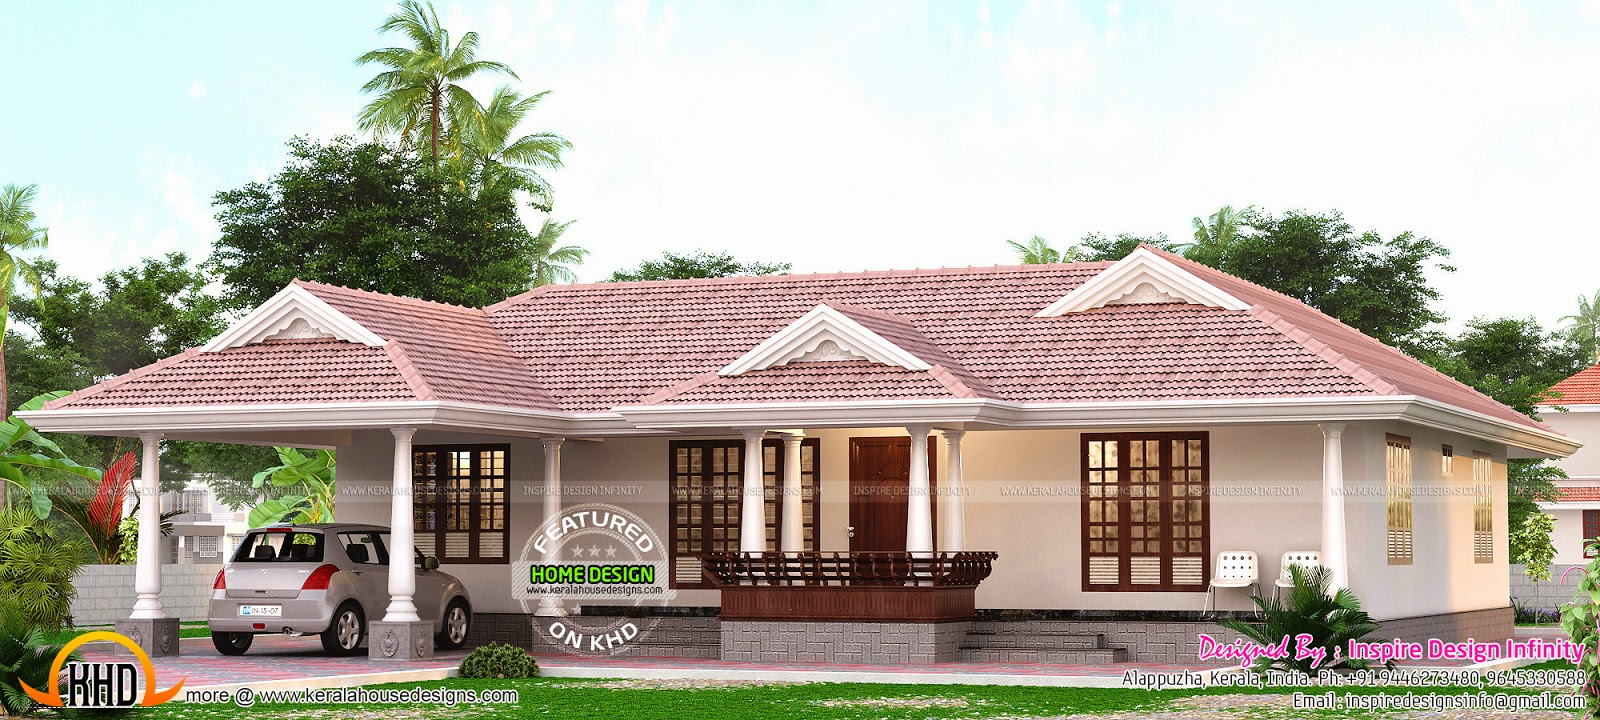 Kerala model single storied home kerala home design and for Kerala style single storey house plans